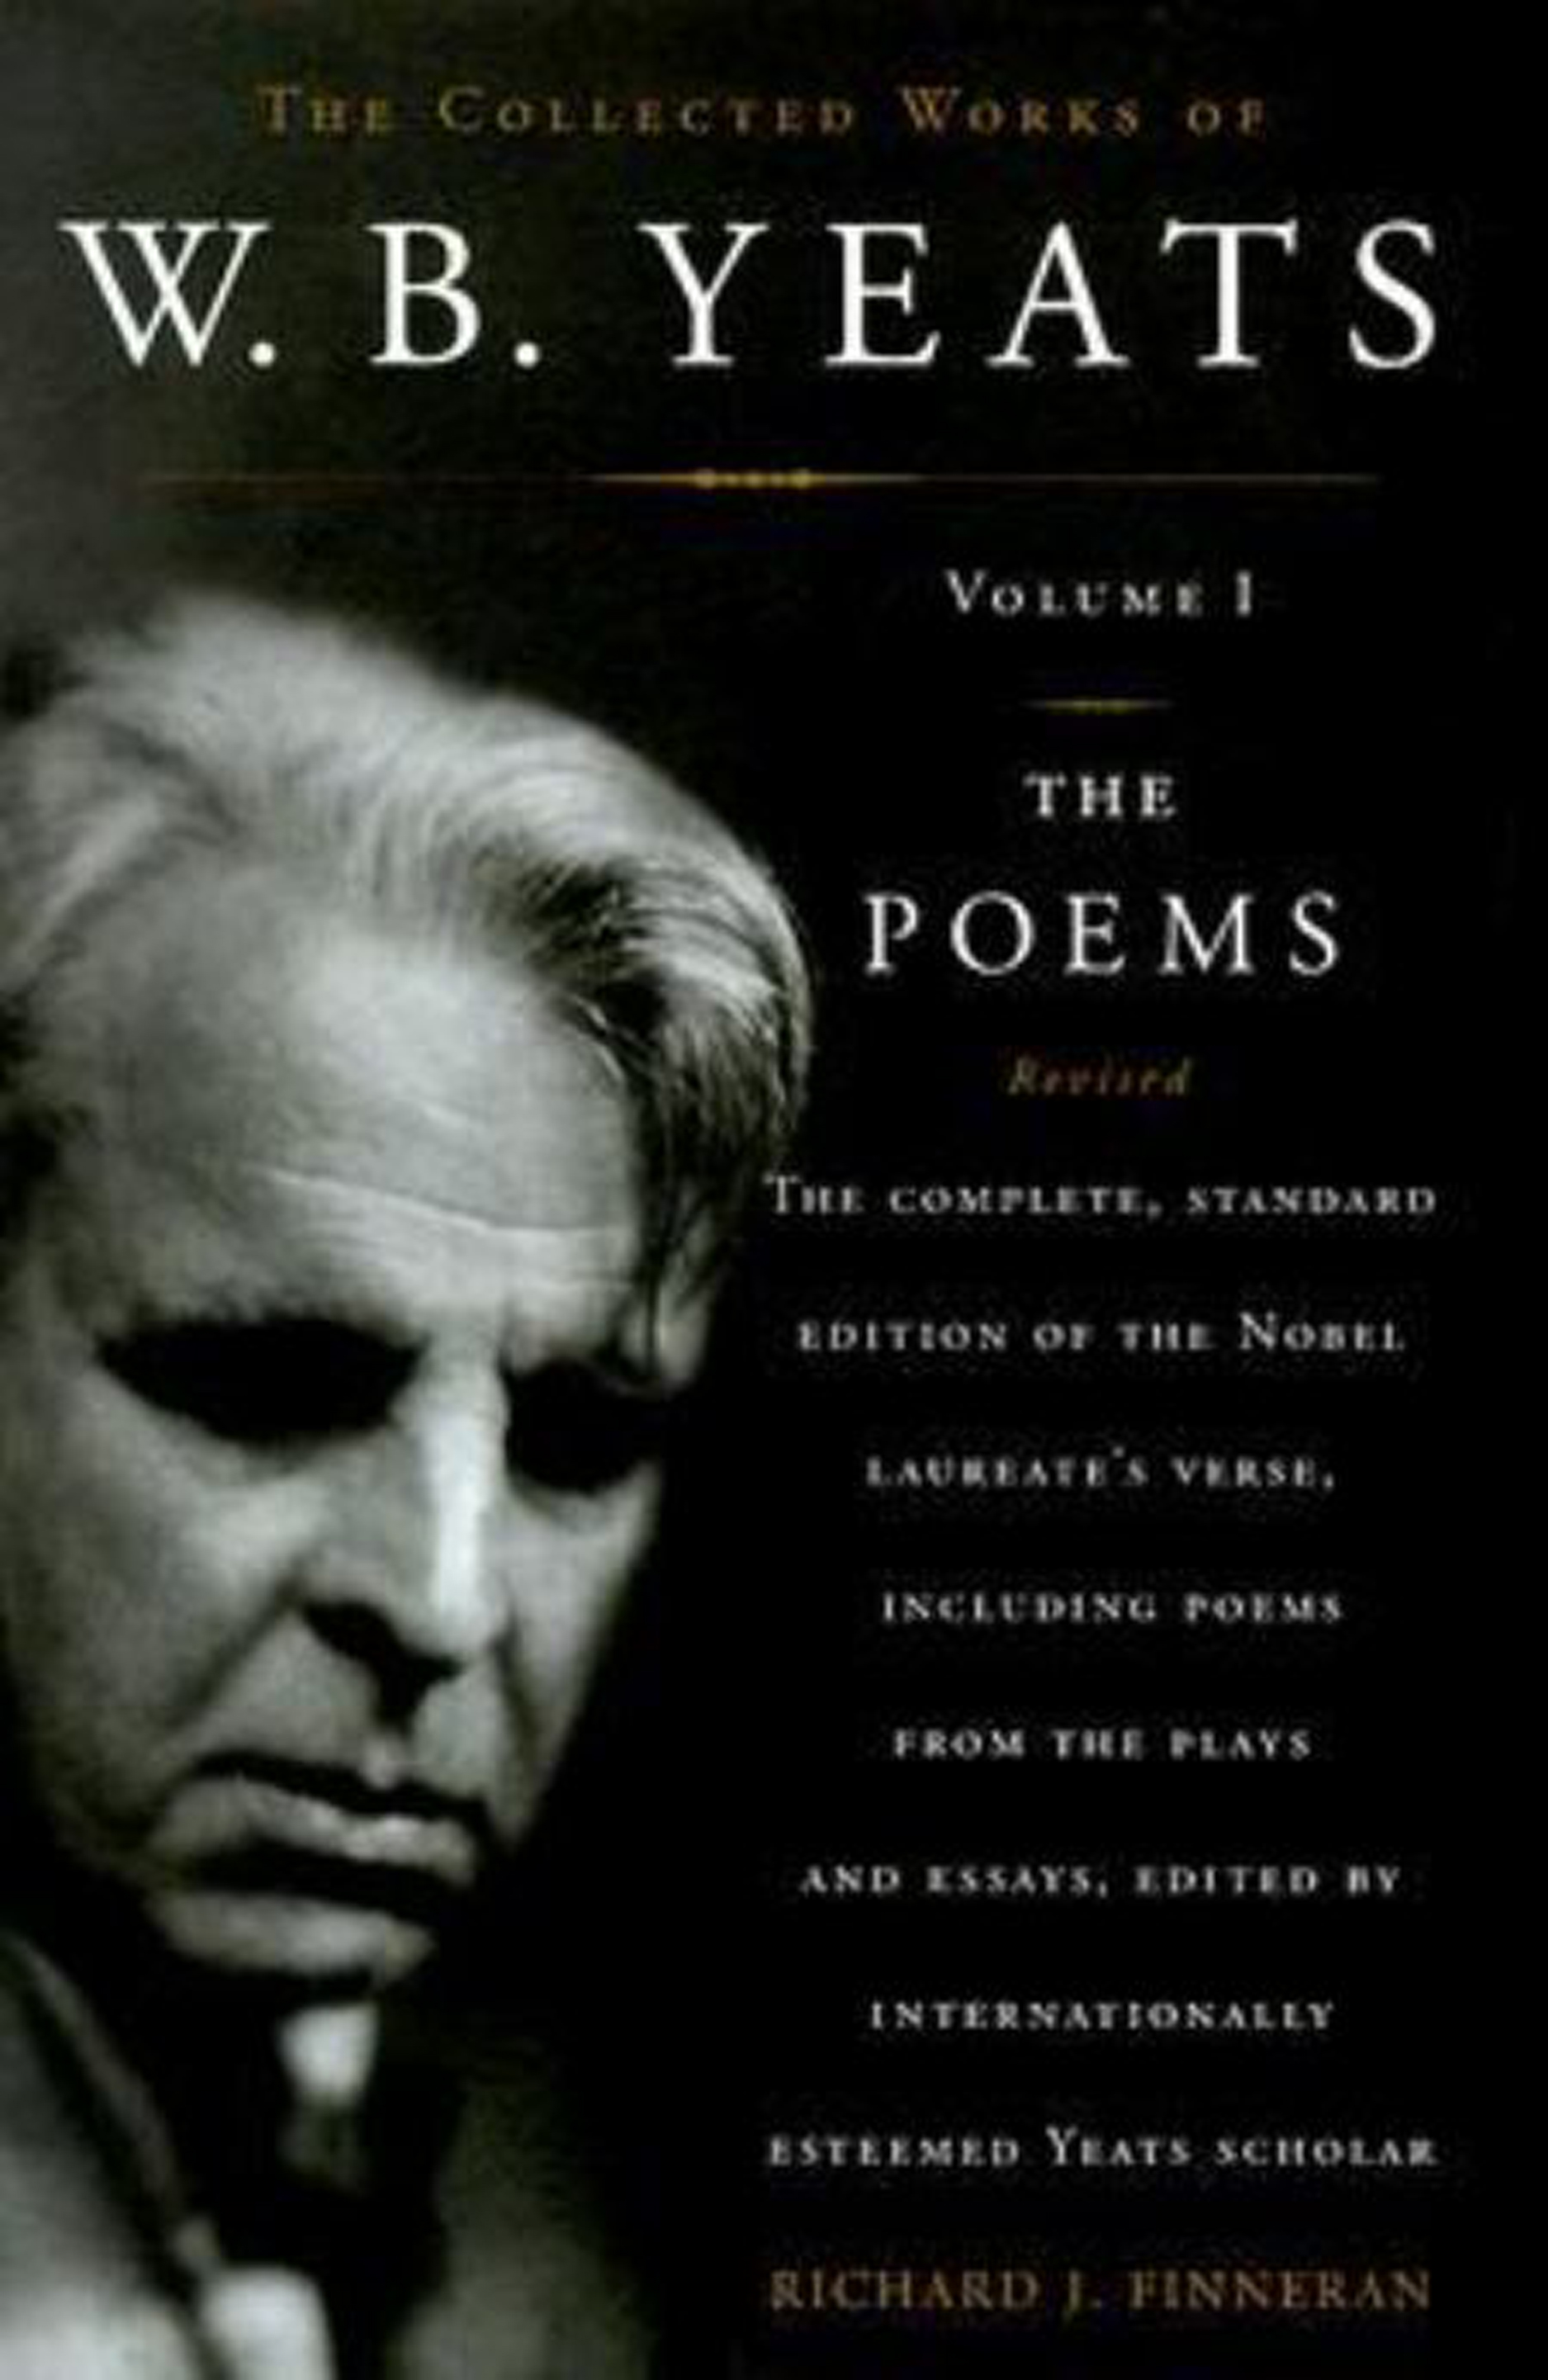 the collected works of w b yeats book by richard j finneran cvr9780684839356 9780684839356 hr